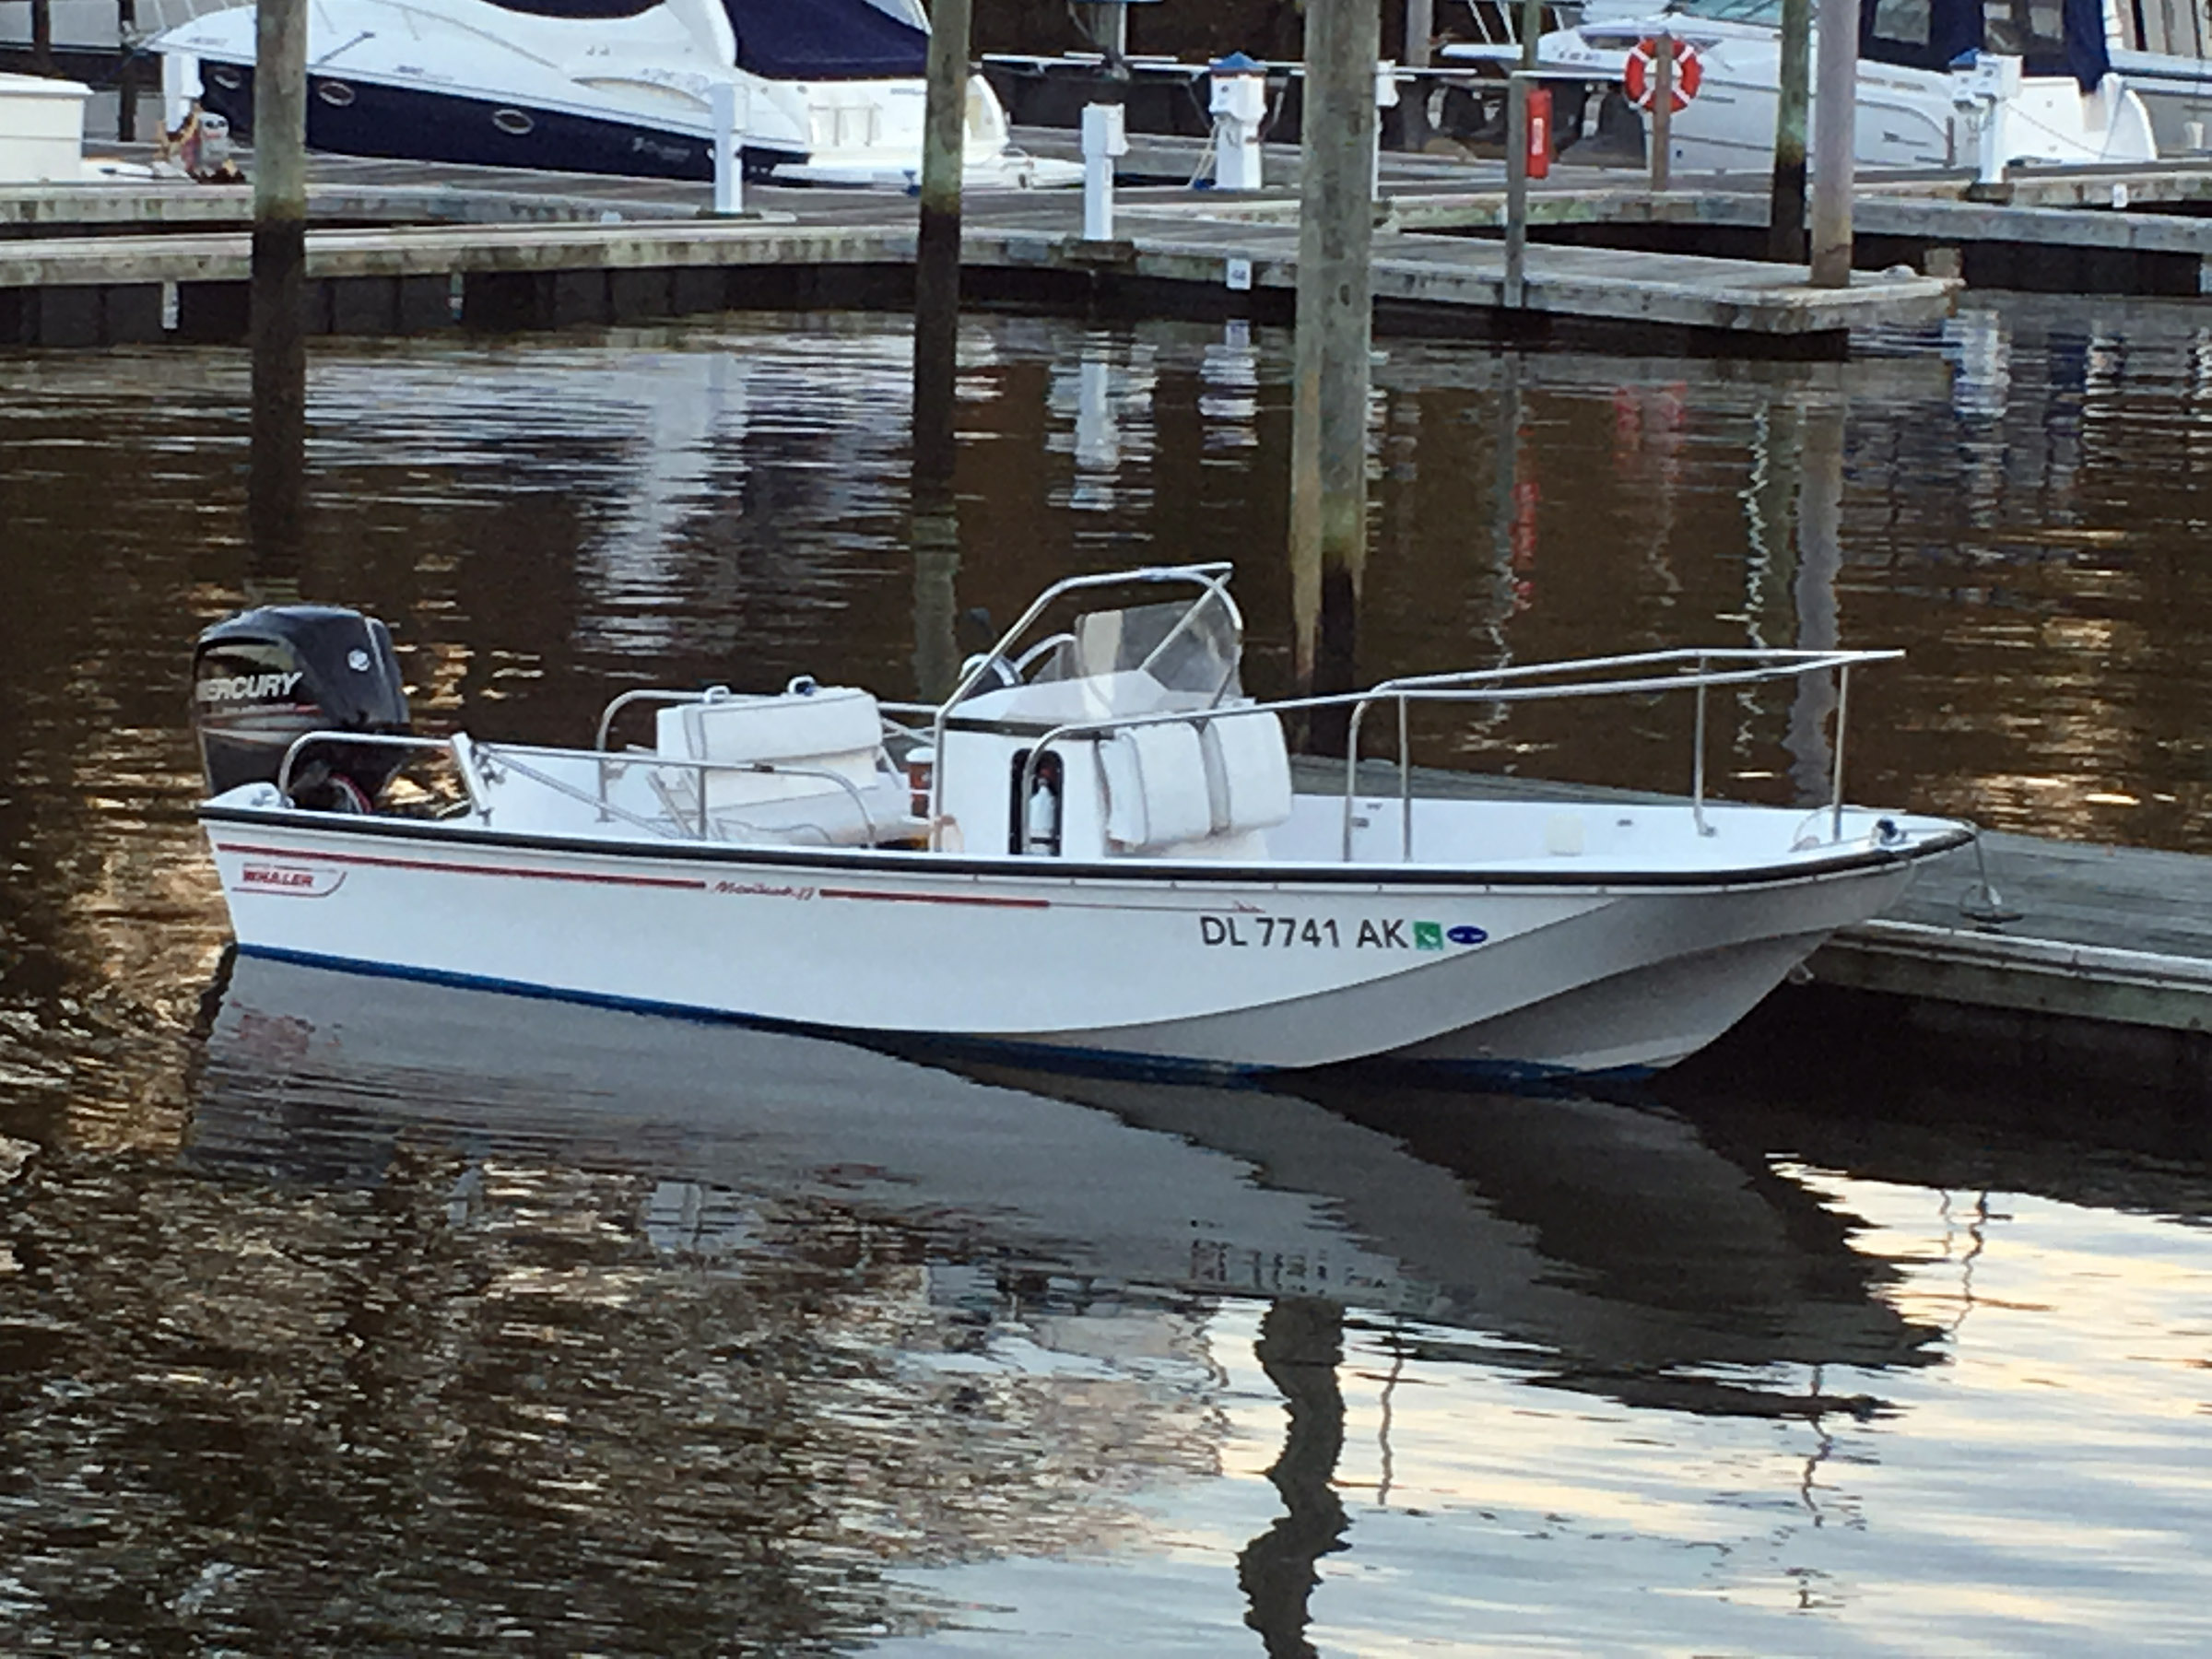 before & after - See how Sawyer Marine has given engines and boats a new lease on life